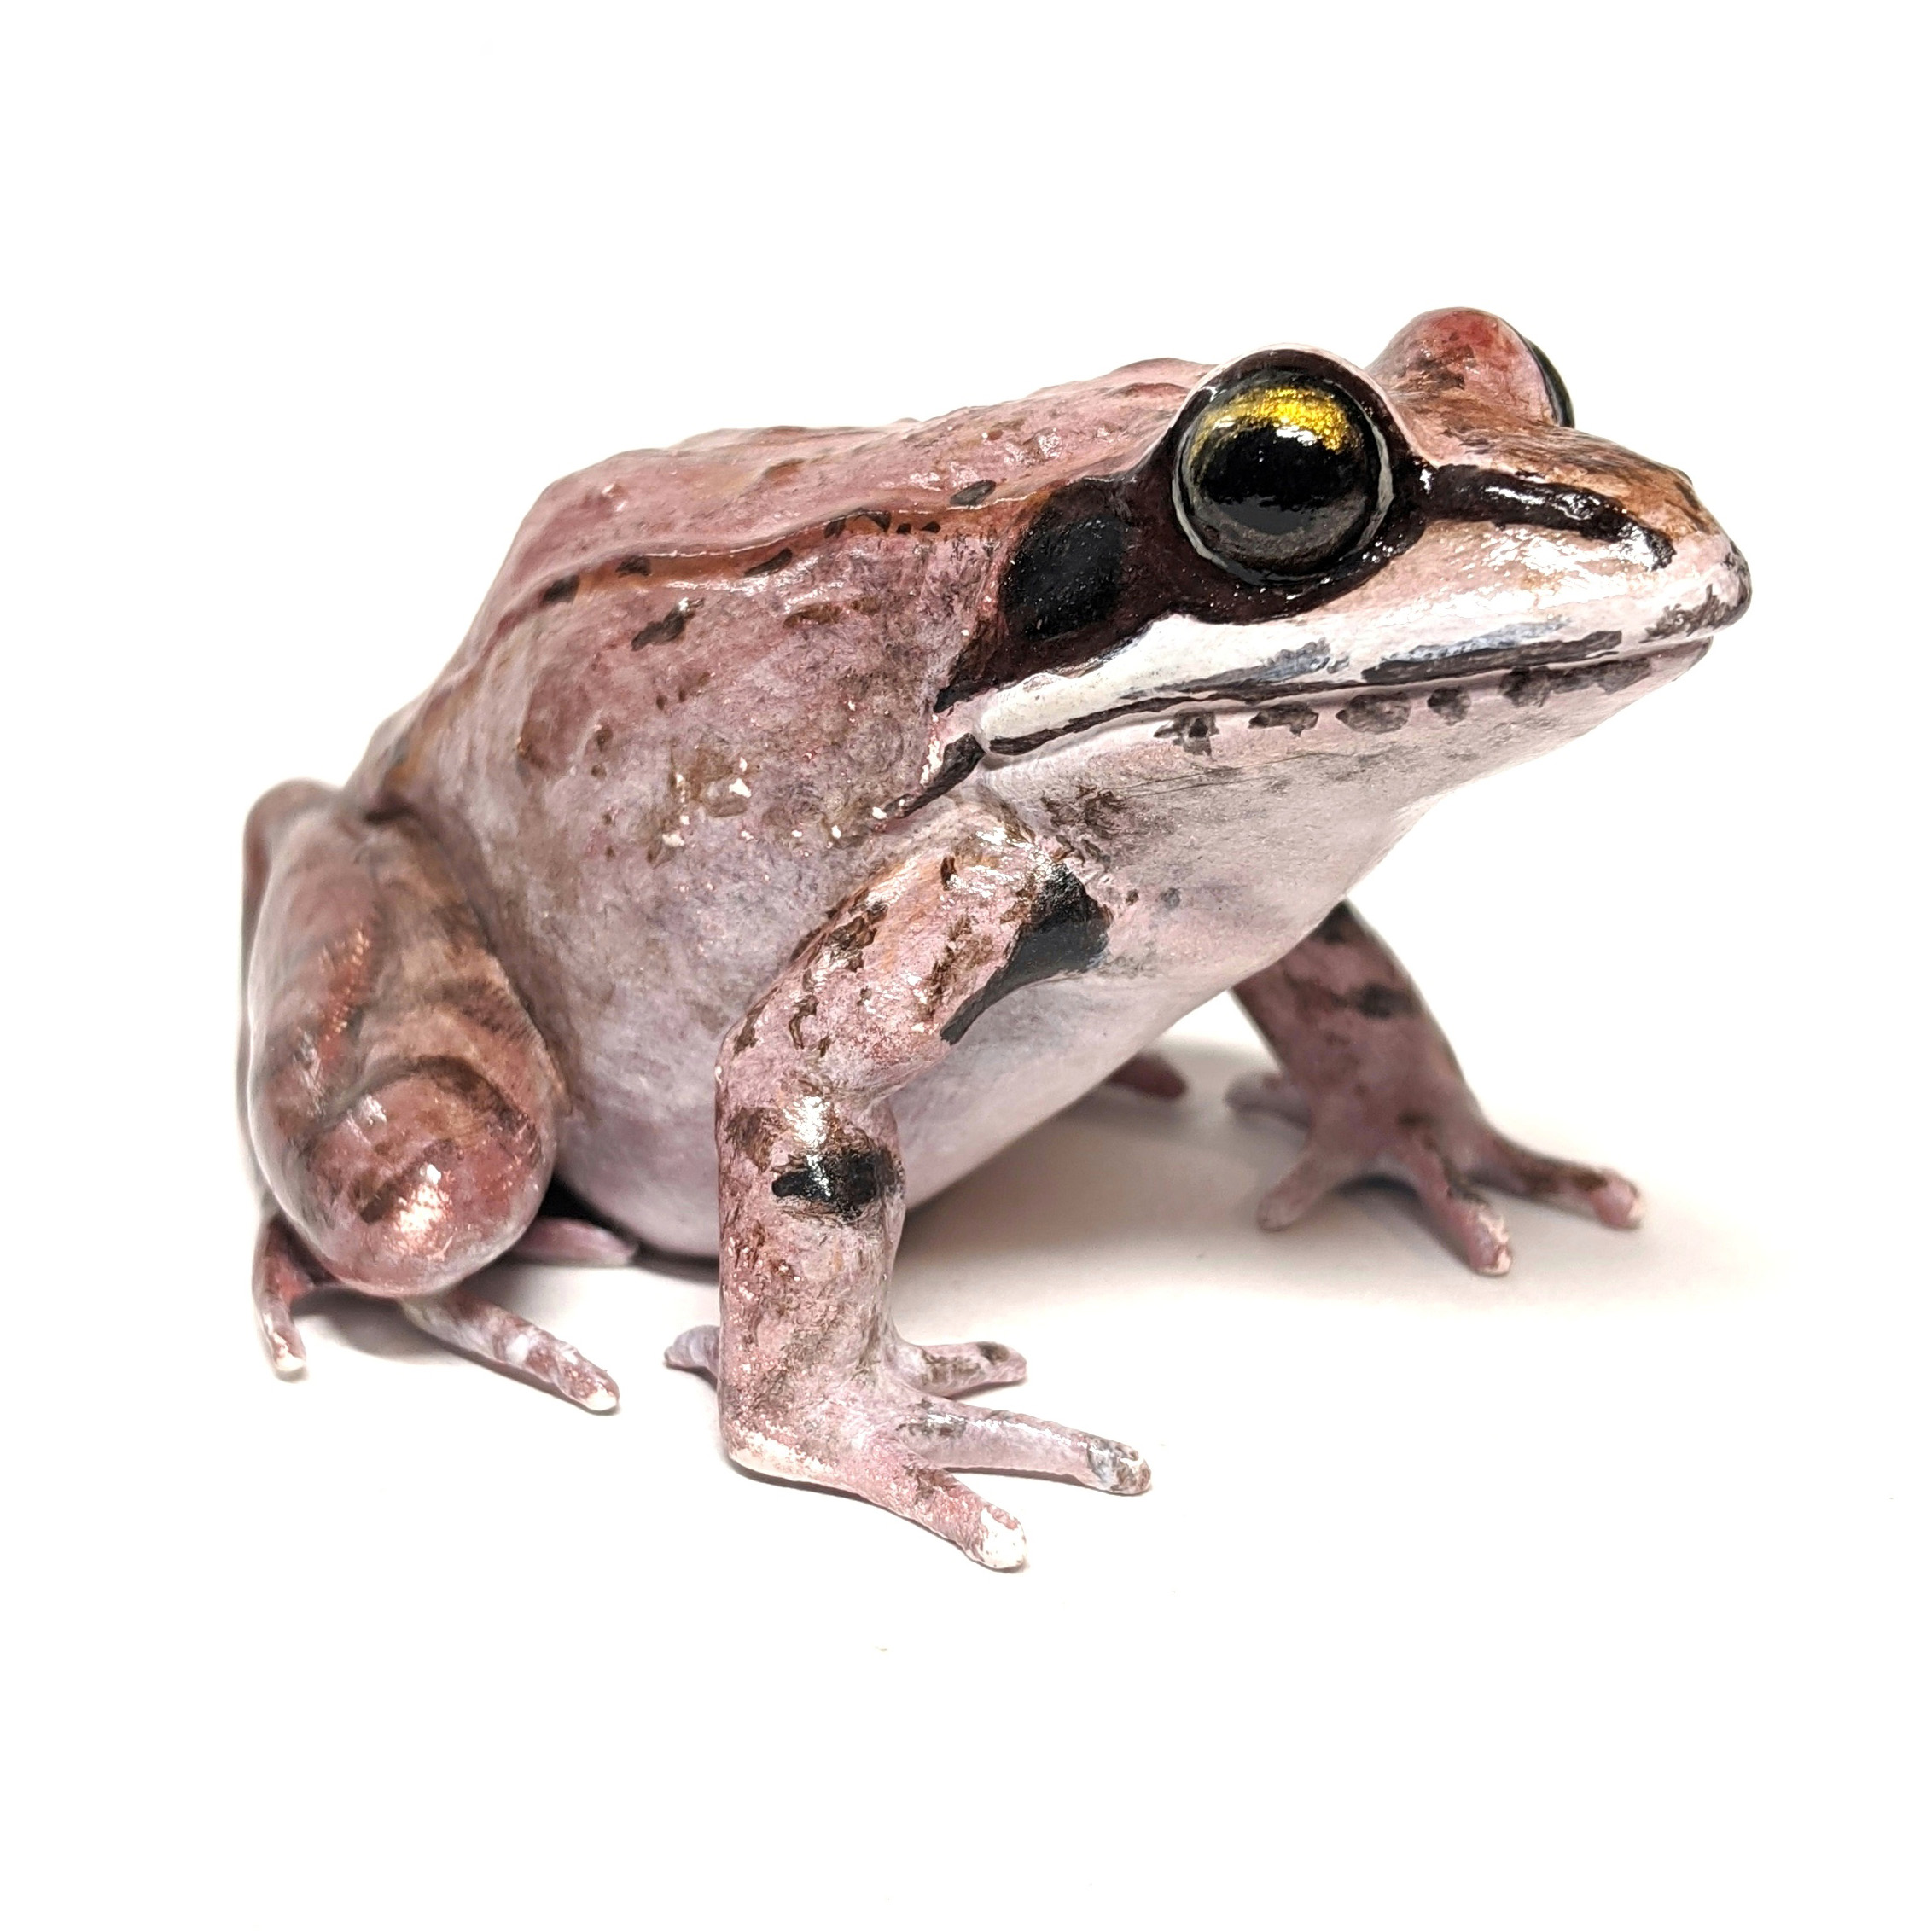 Wood Frog (Lithobates Sylvaticus) Model